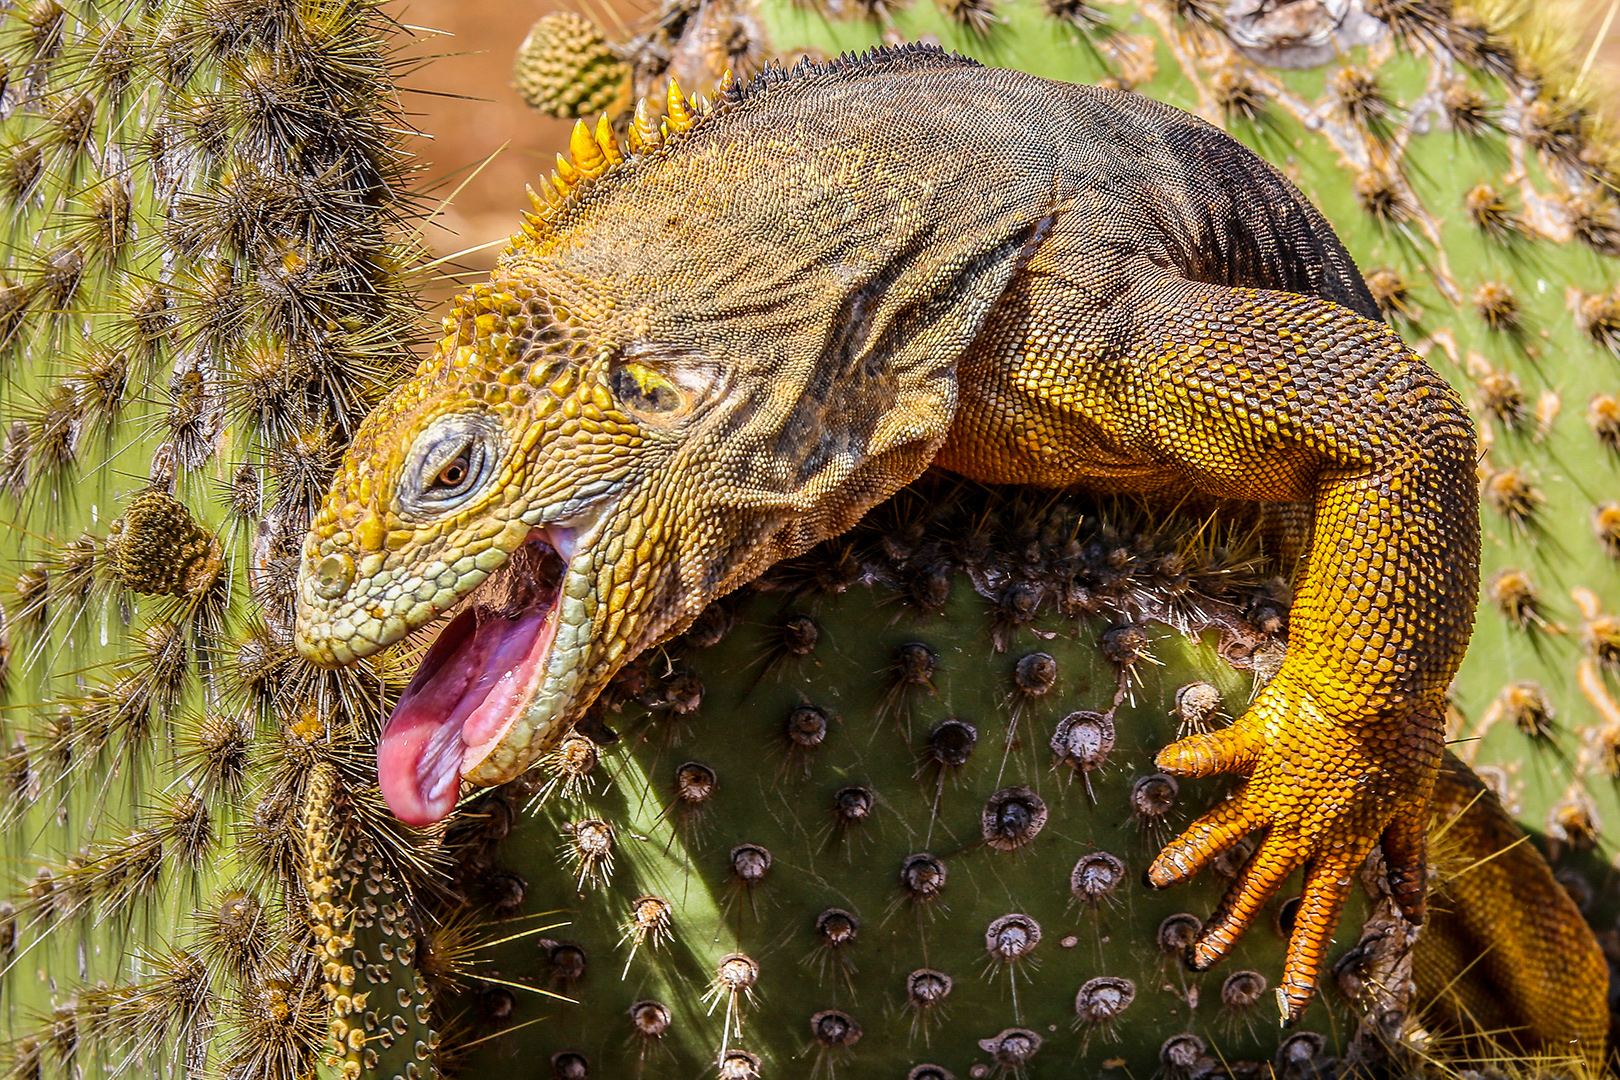 """2018 Nature Section """"A Prickly Lunch"""" by Margot Hughes: Awarded SSNEP Silver Medal"""